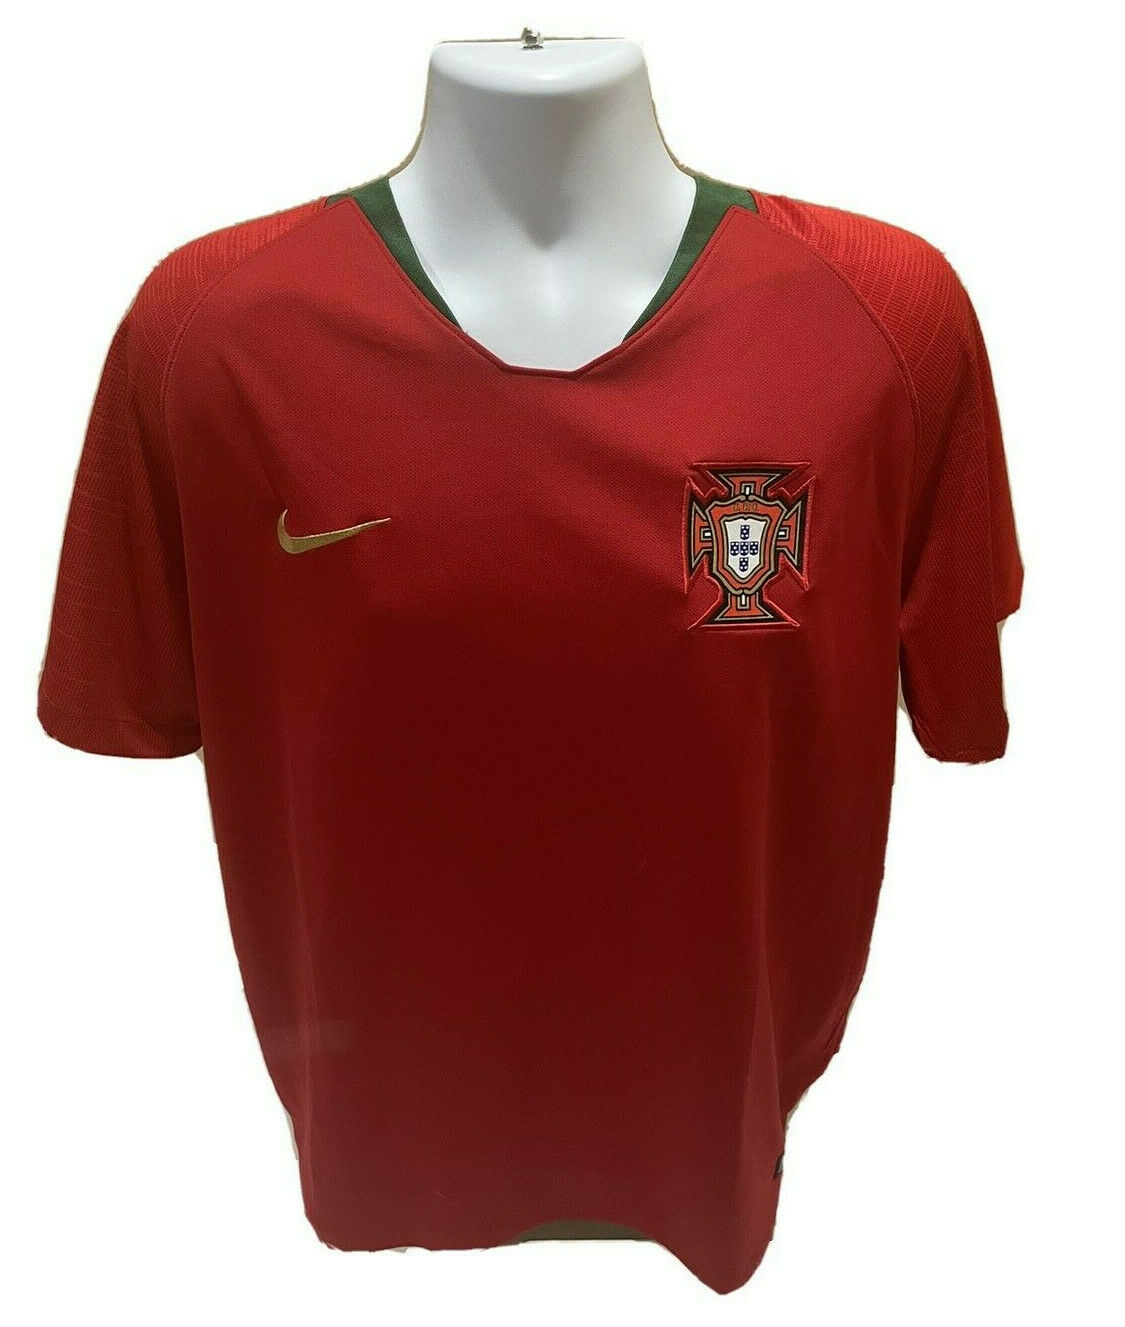 2018 Nike Dri-Fit Authentic Portugal National Soccer Team Jersey Mens XL NWOT - $29.99